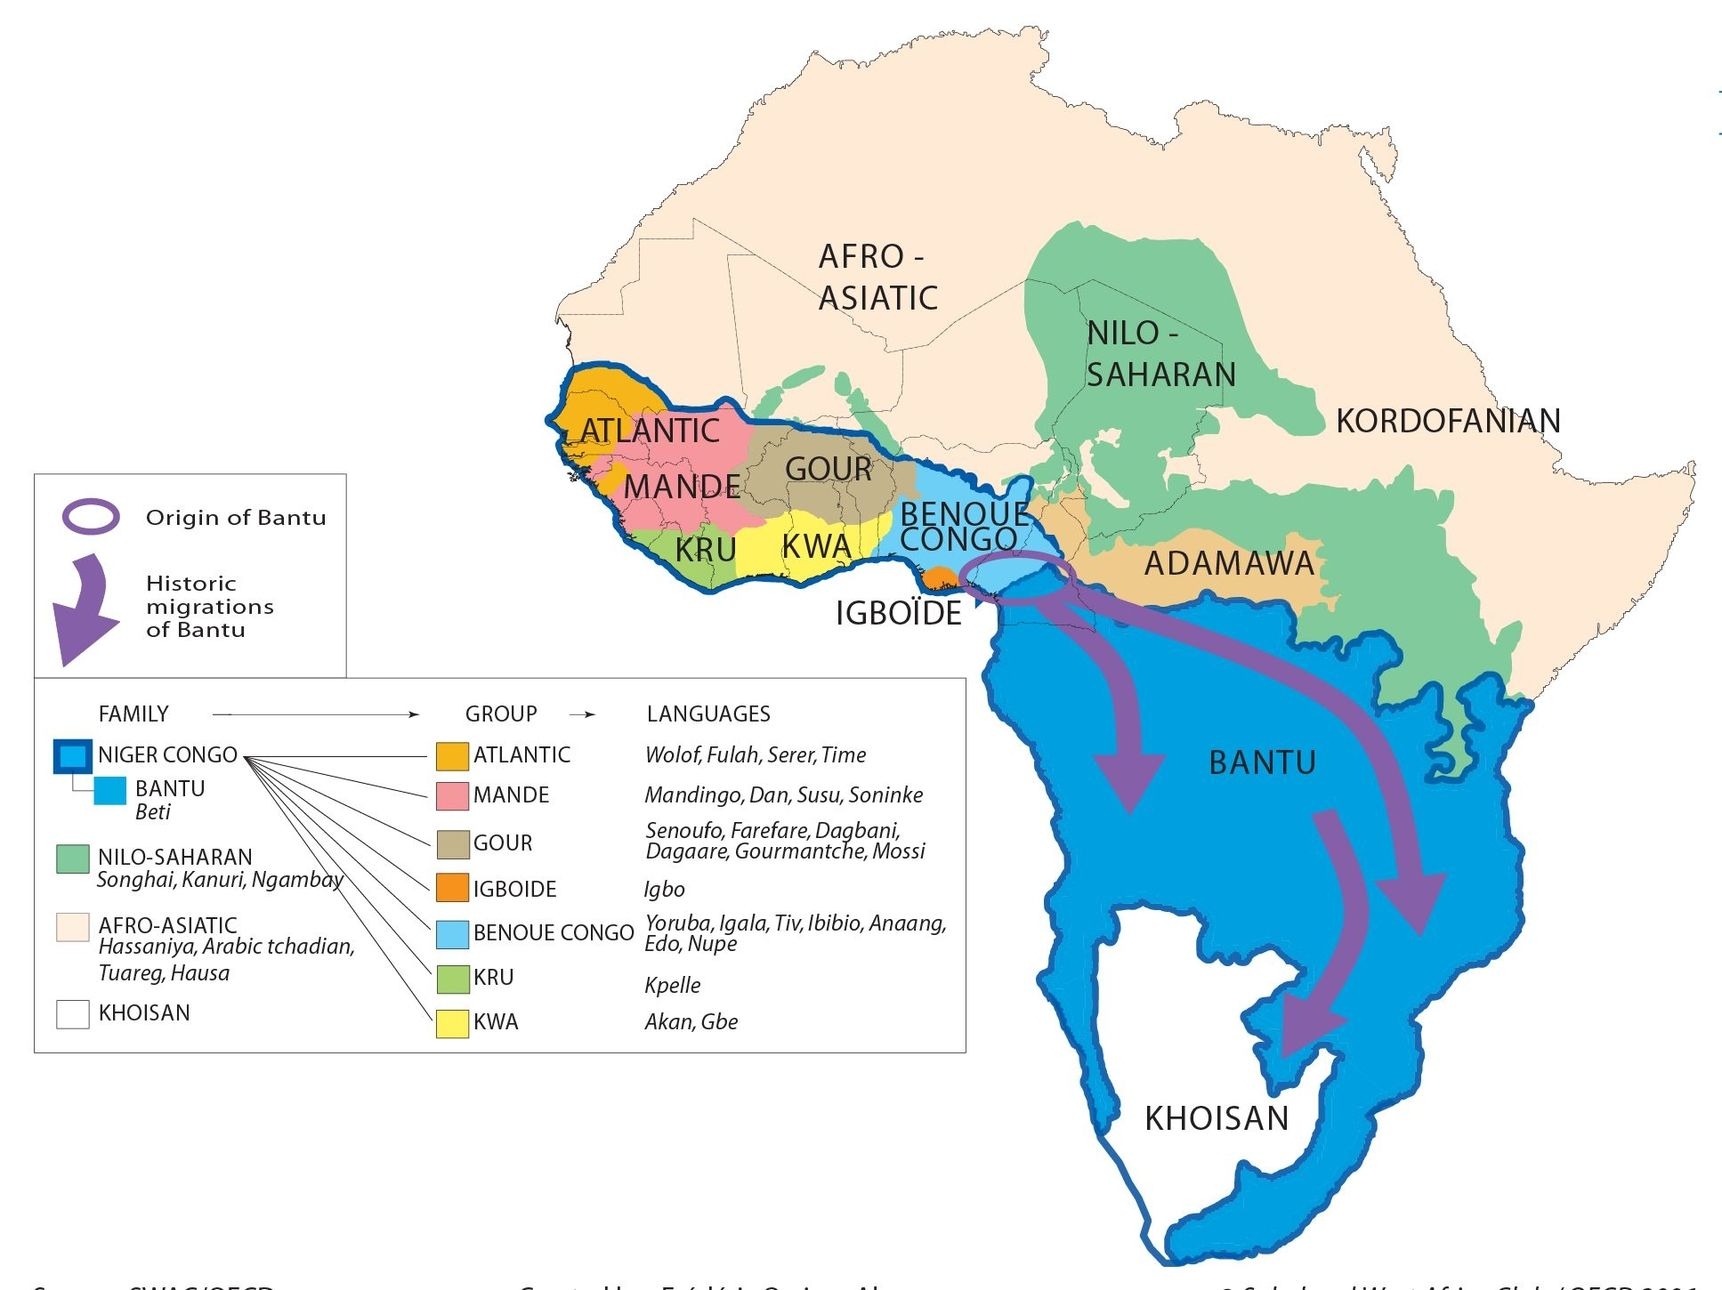 EthnoLinguistic Tracing African Roots